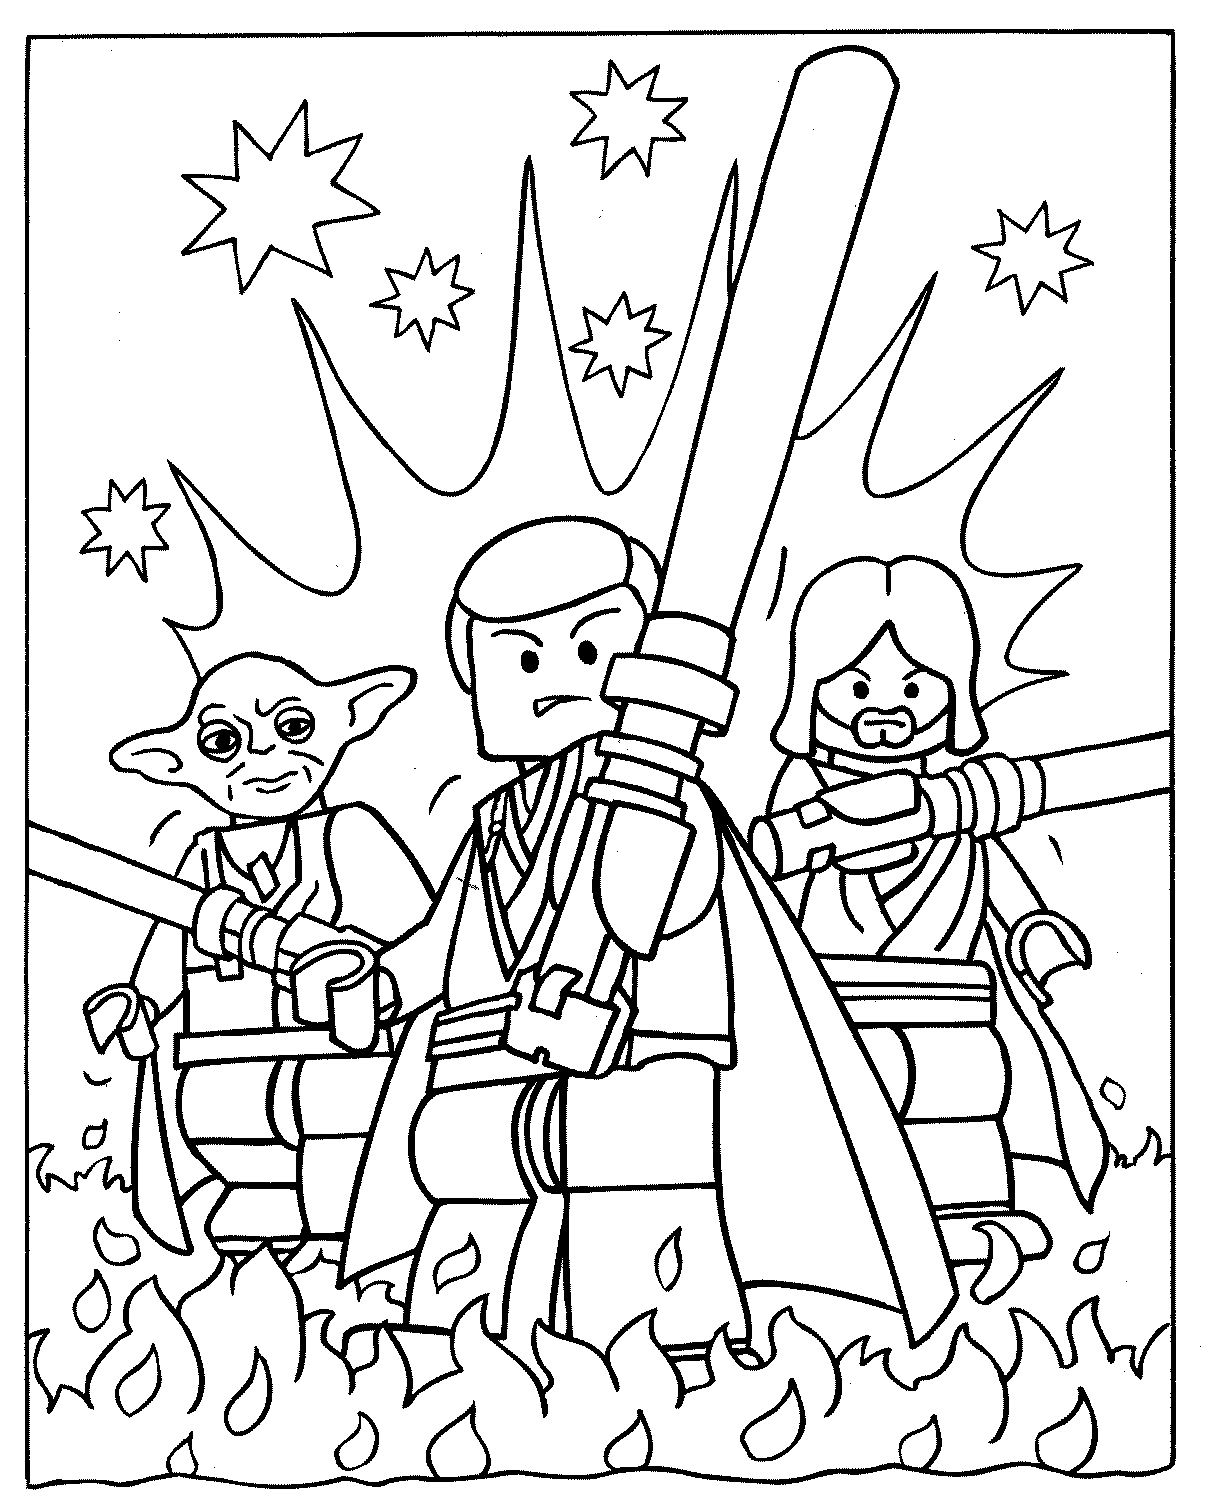 Free Printable Star Wars Coloring Pages For Kids 11329